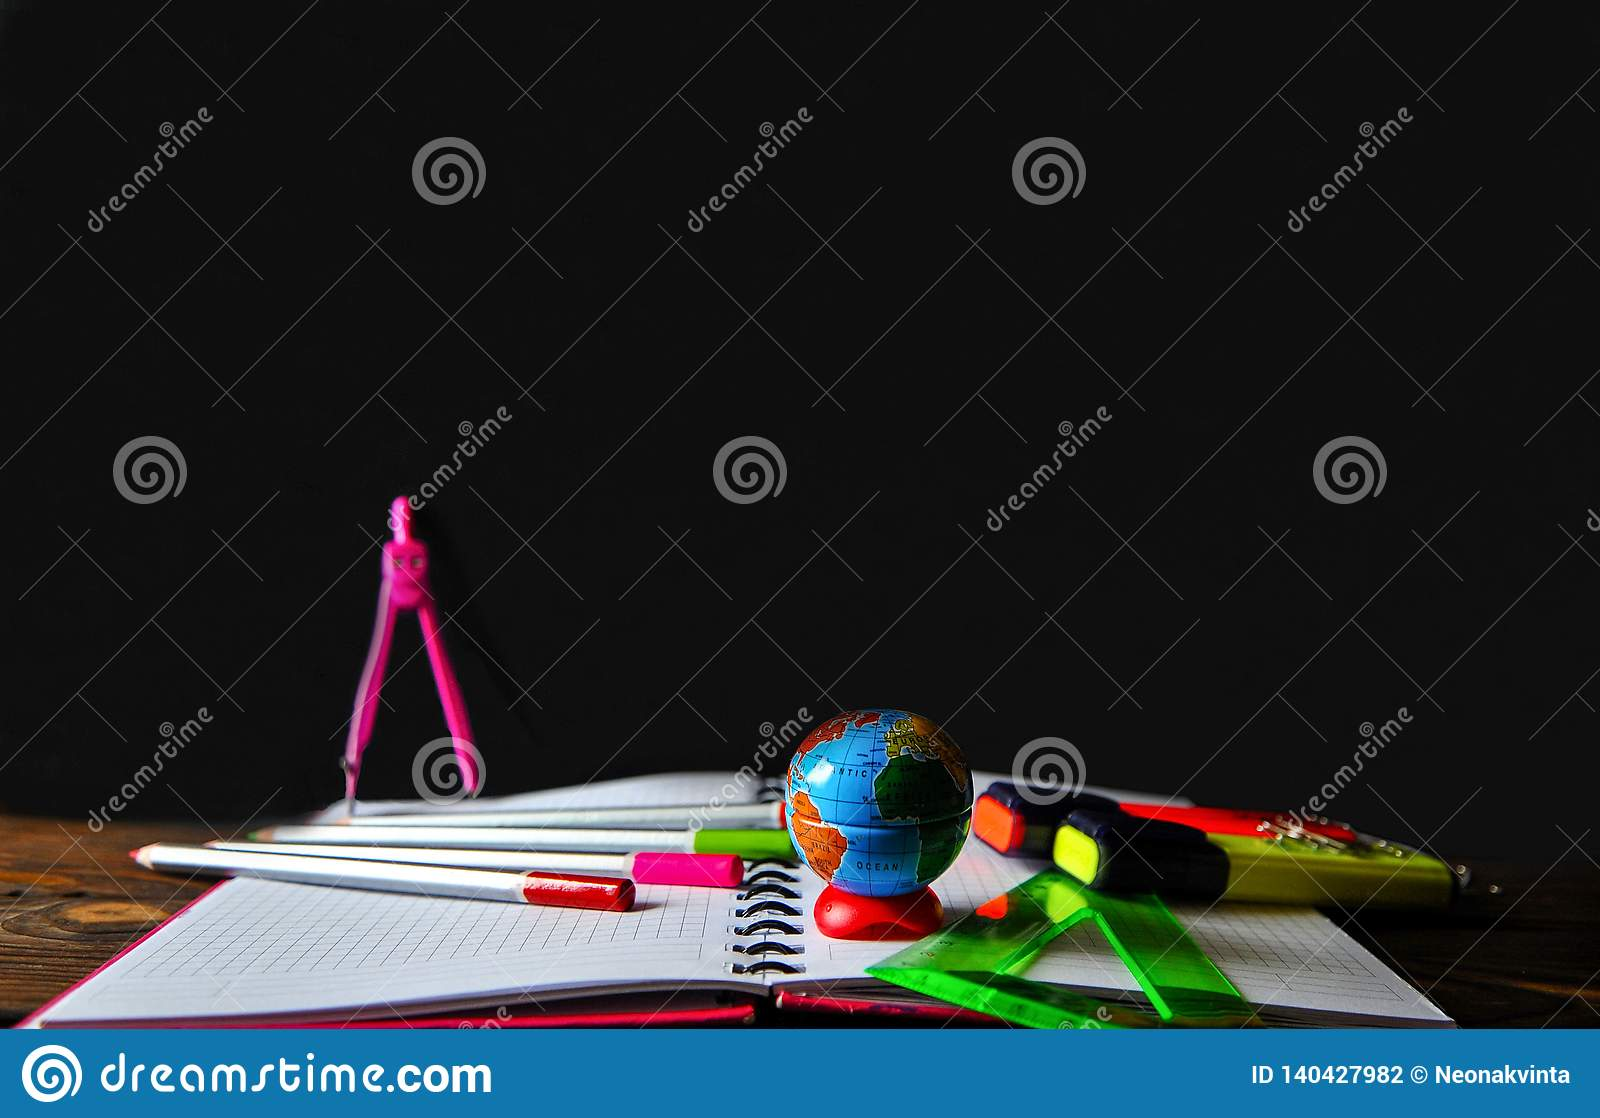 Stationery scattered on a notebook lying on a wooden table on the background of a board